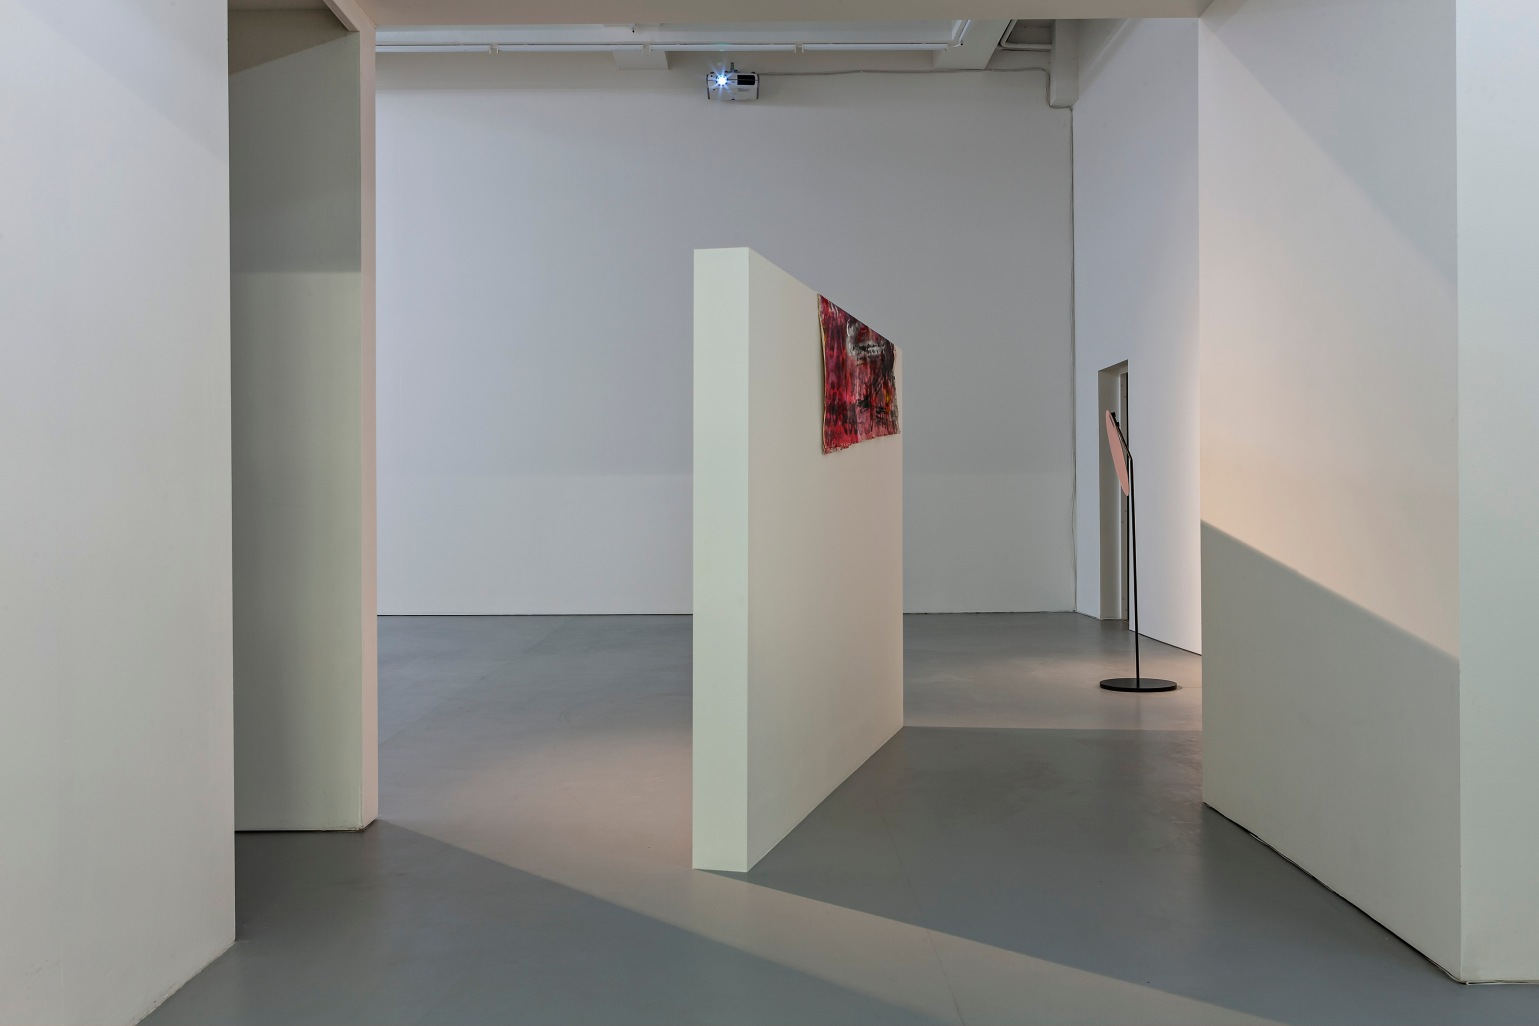 Installation view : Neil Doshi, Scenes From Scenes From a Play, 2015